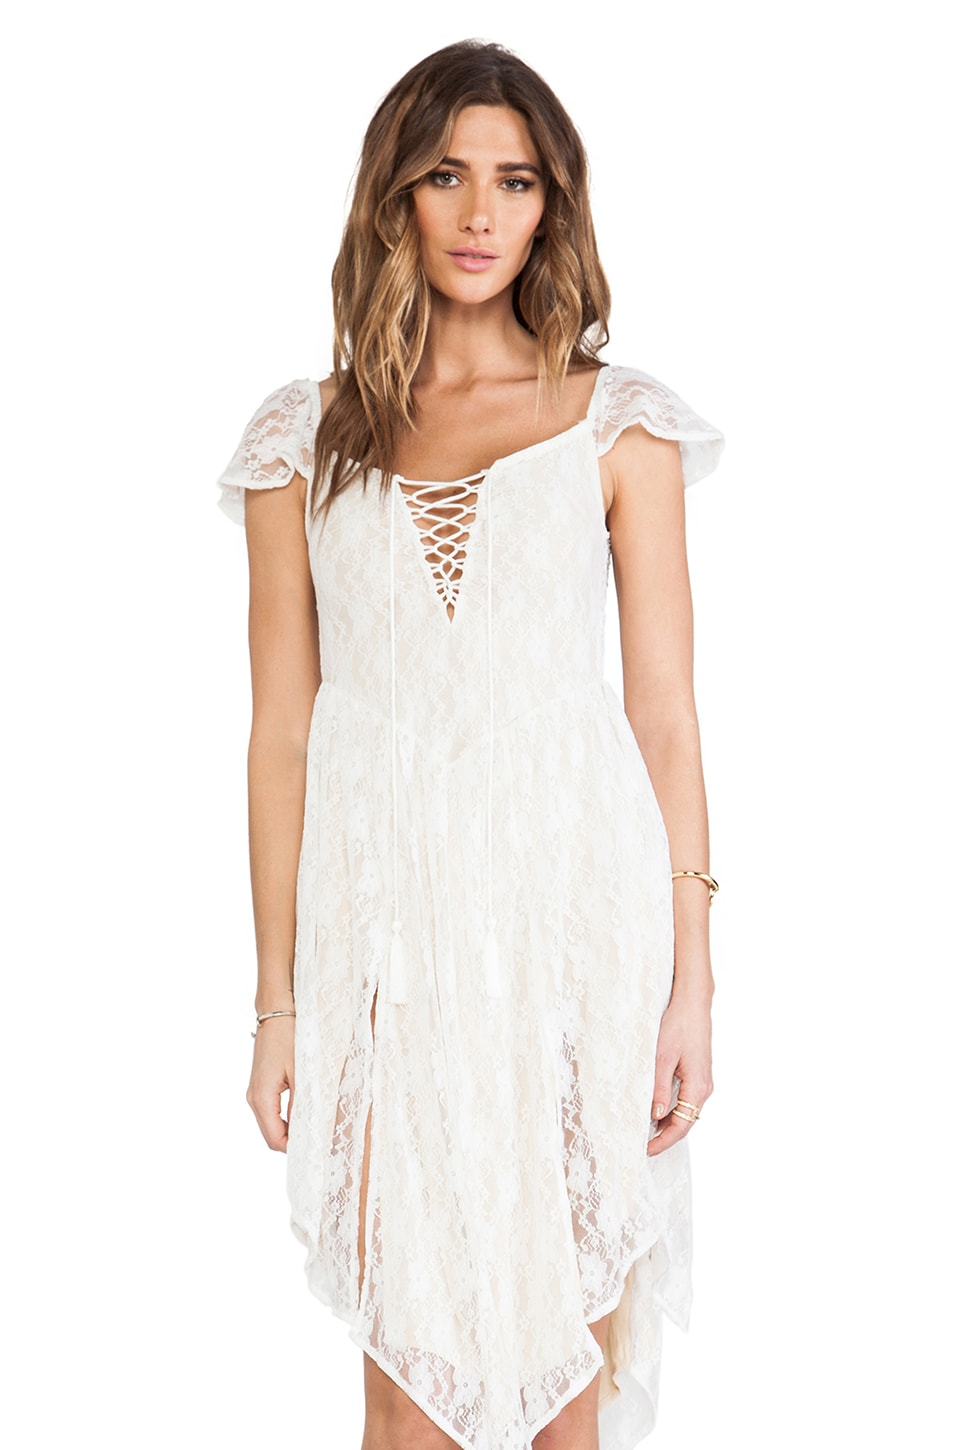 Spell & The Gypsy Collective Glastonbury Lace Dress in White